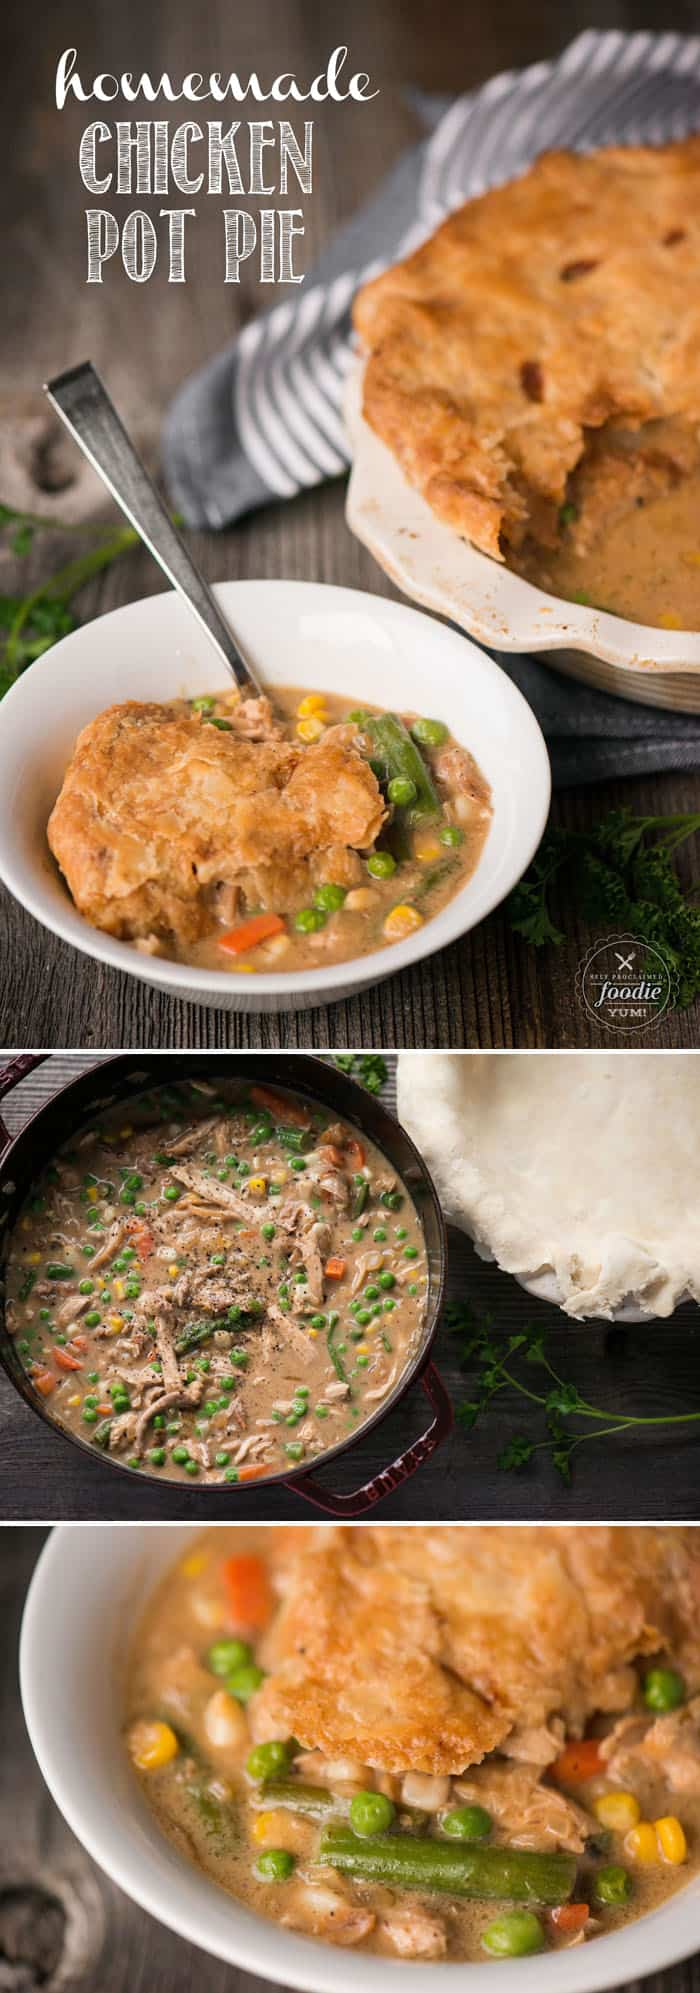 Homemade chicken pot pie self proclaimed foodie sometimes you just cant beat a classic and theres no better comfort food forumfinder Gallery